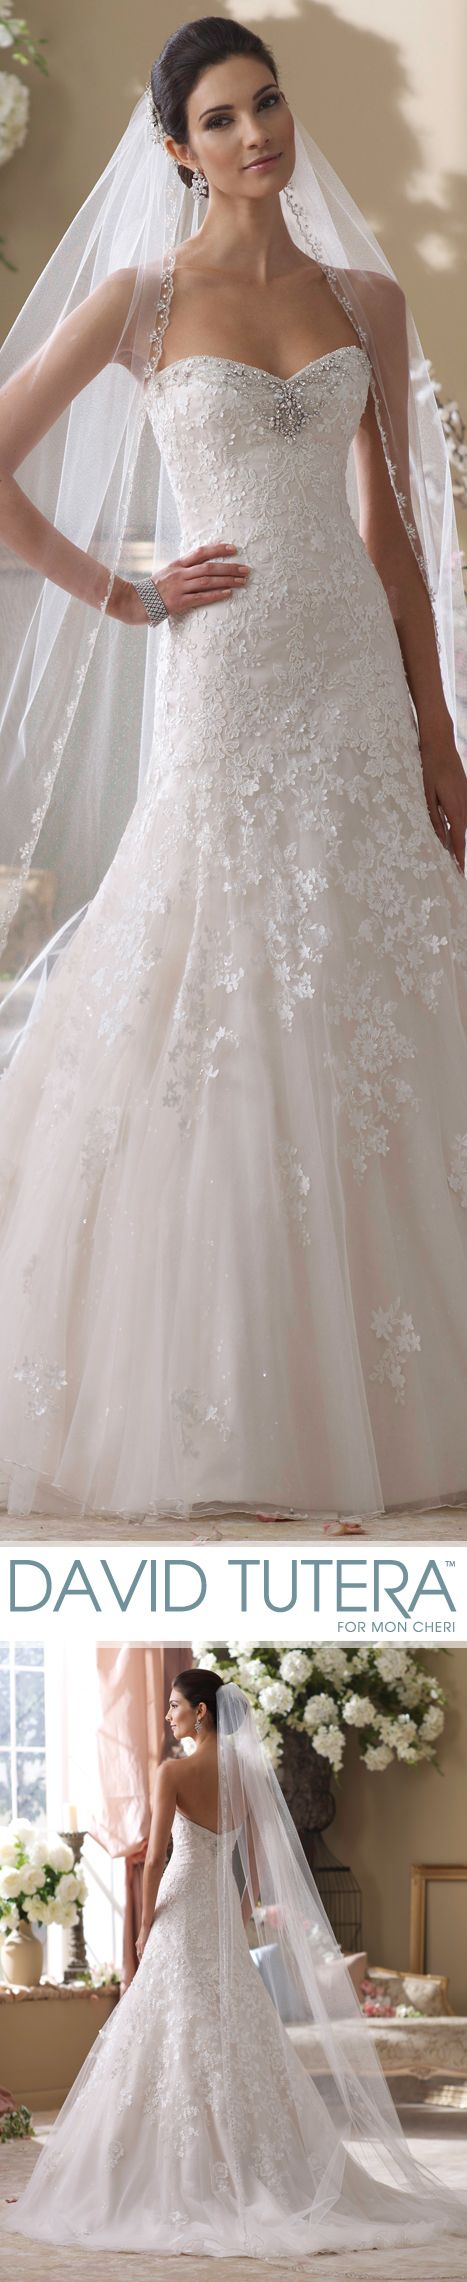 Style no picabo wedding dresses collection